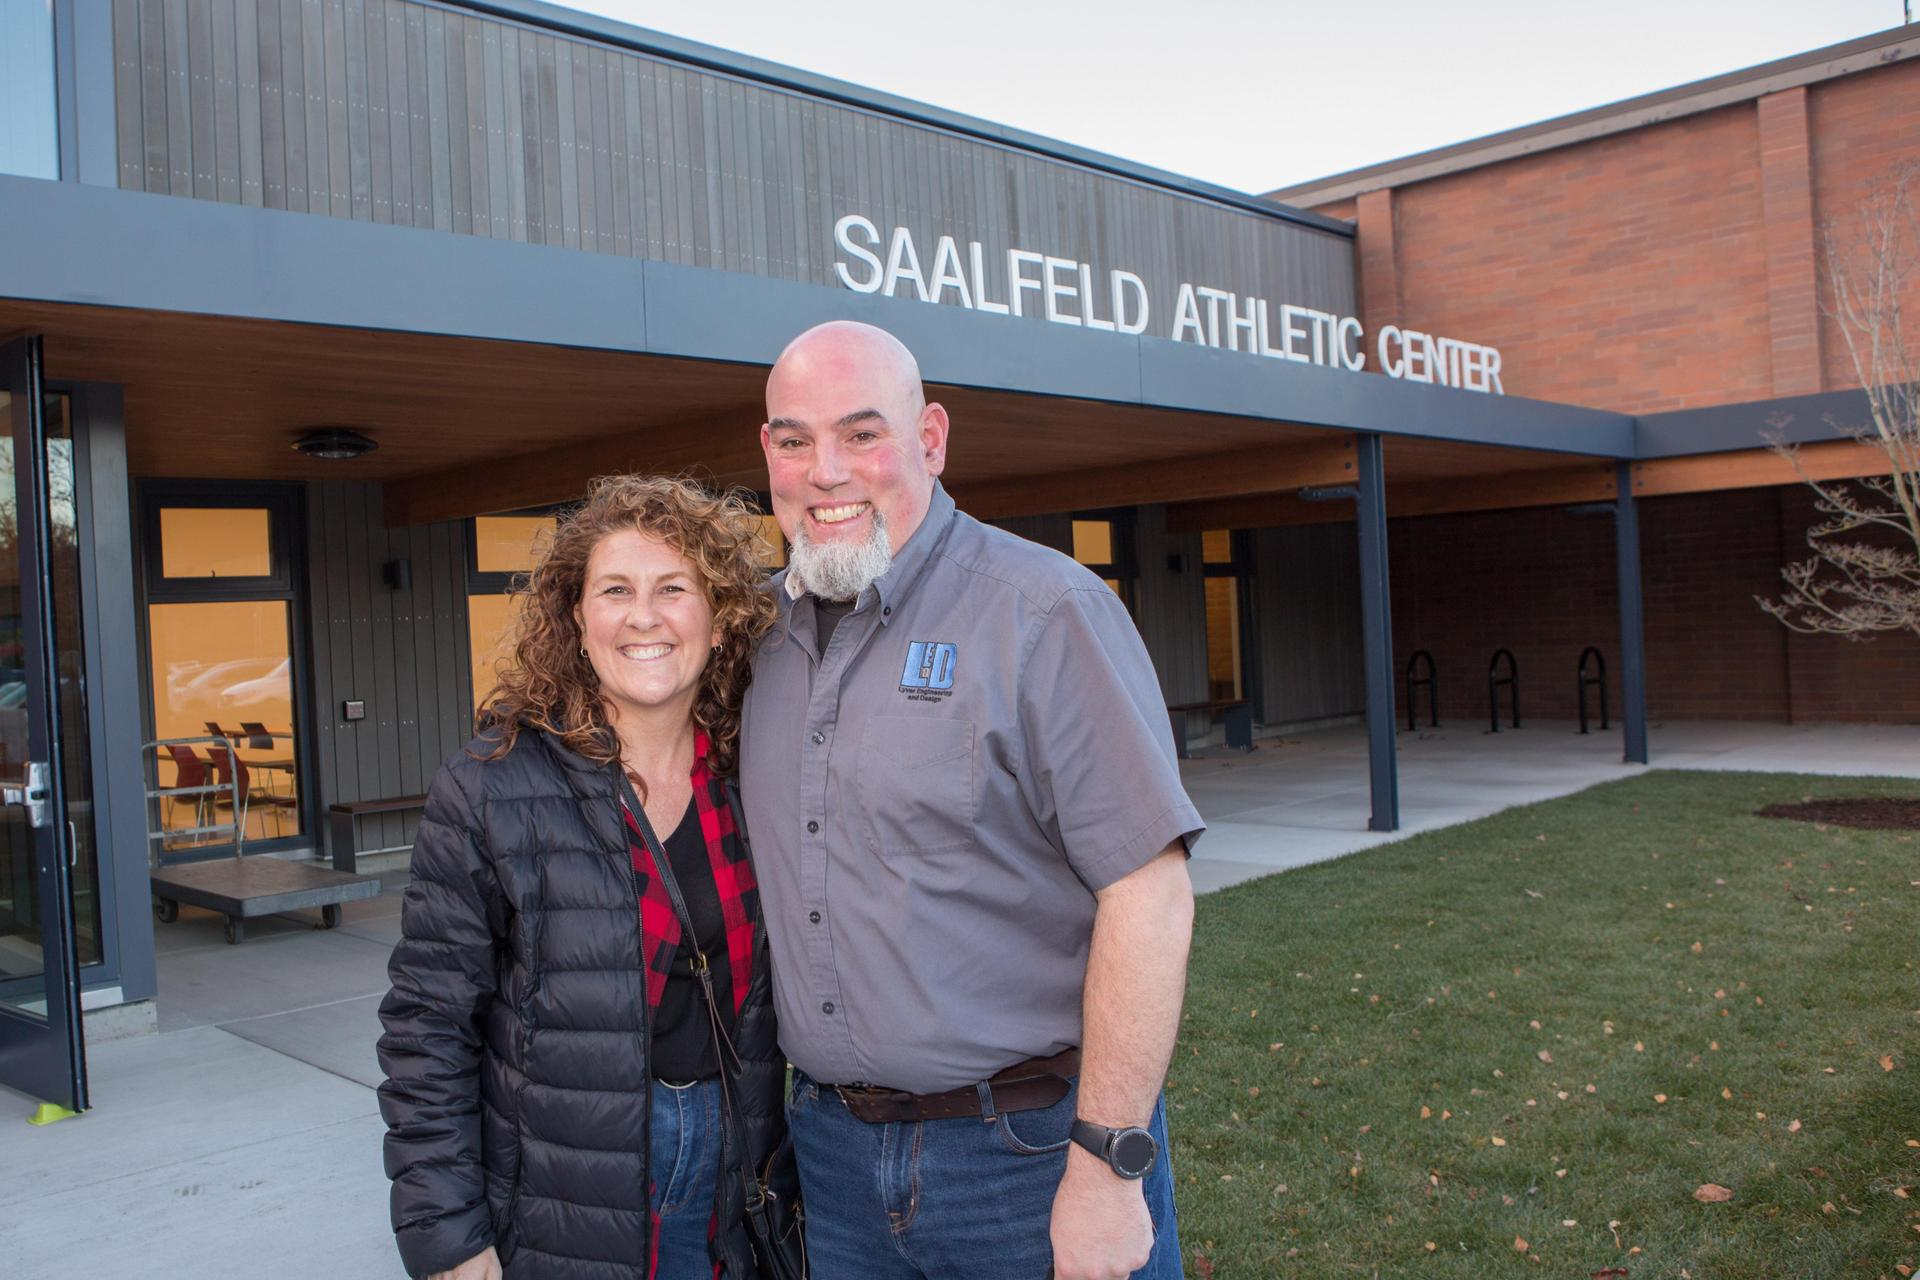 donors standing in front of Saalfeld Athletic Center main entrance